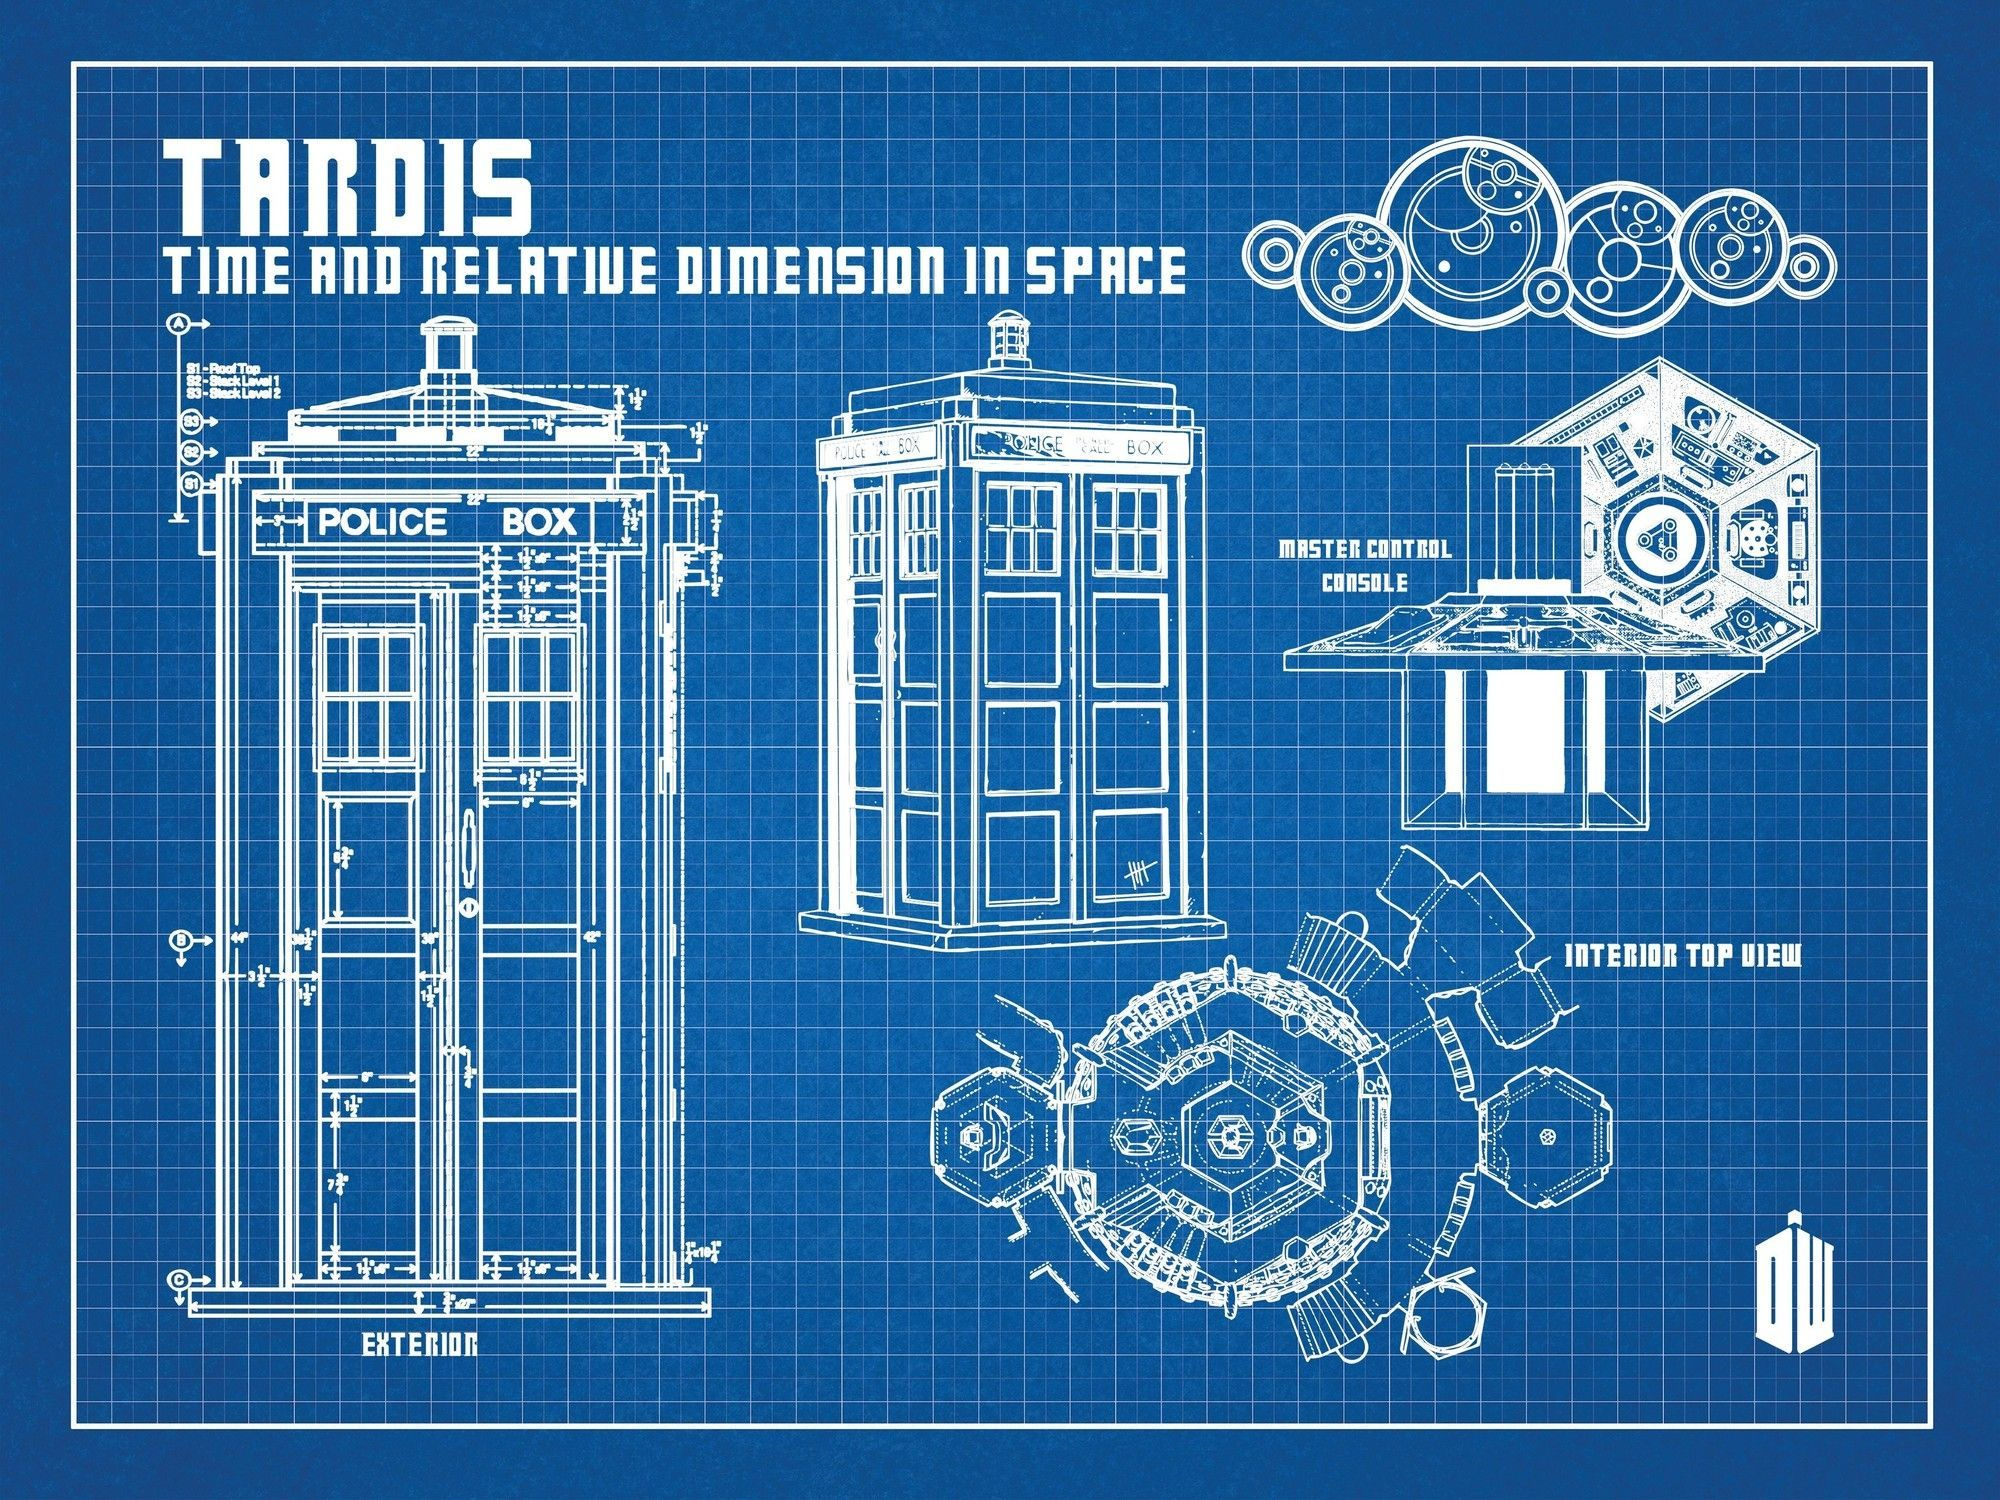 Doctor who tardis blueprint graphic art poster in blue gridwhite doctor who tardis blueprint graphic art poster in blue gridwhite ink malvernweather Images